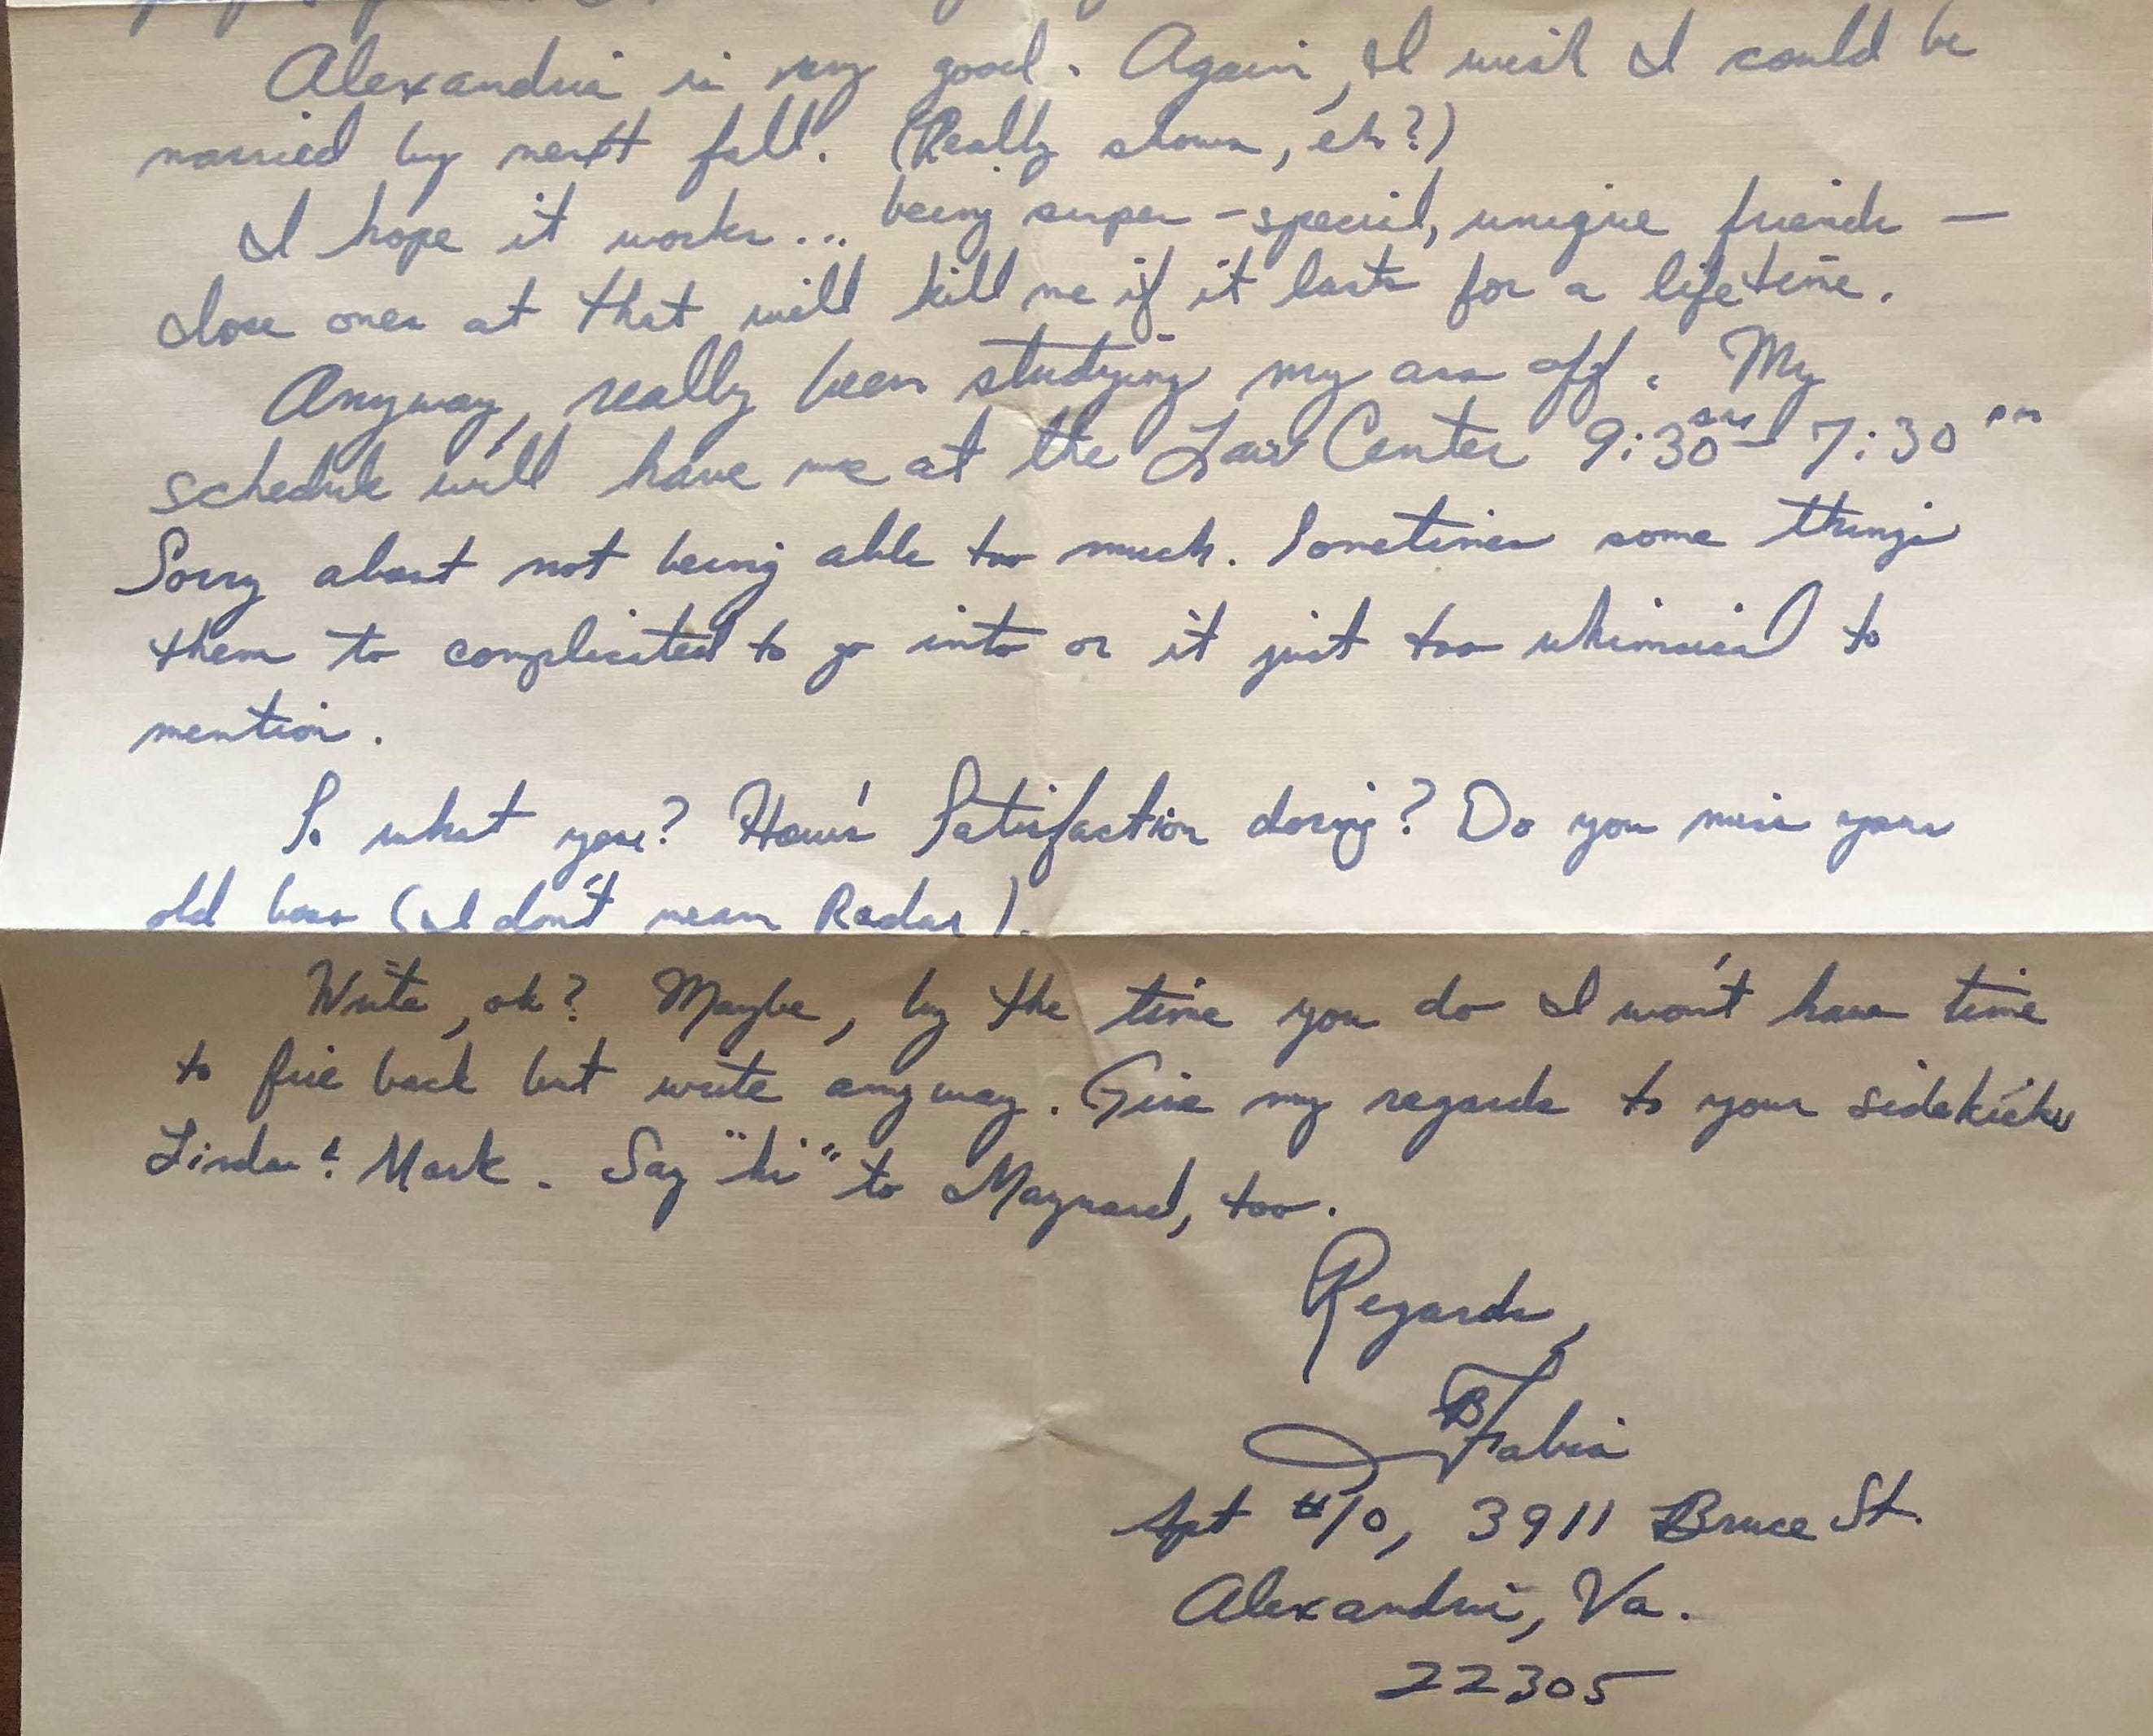 A long lost letter from 1974 was found in March 2019 on The Hop MKE. The person who found it wants to return it to the owner.